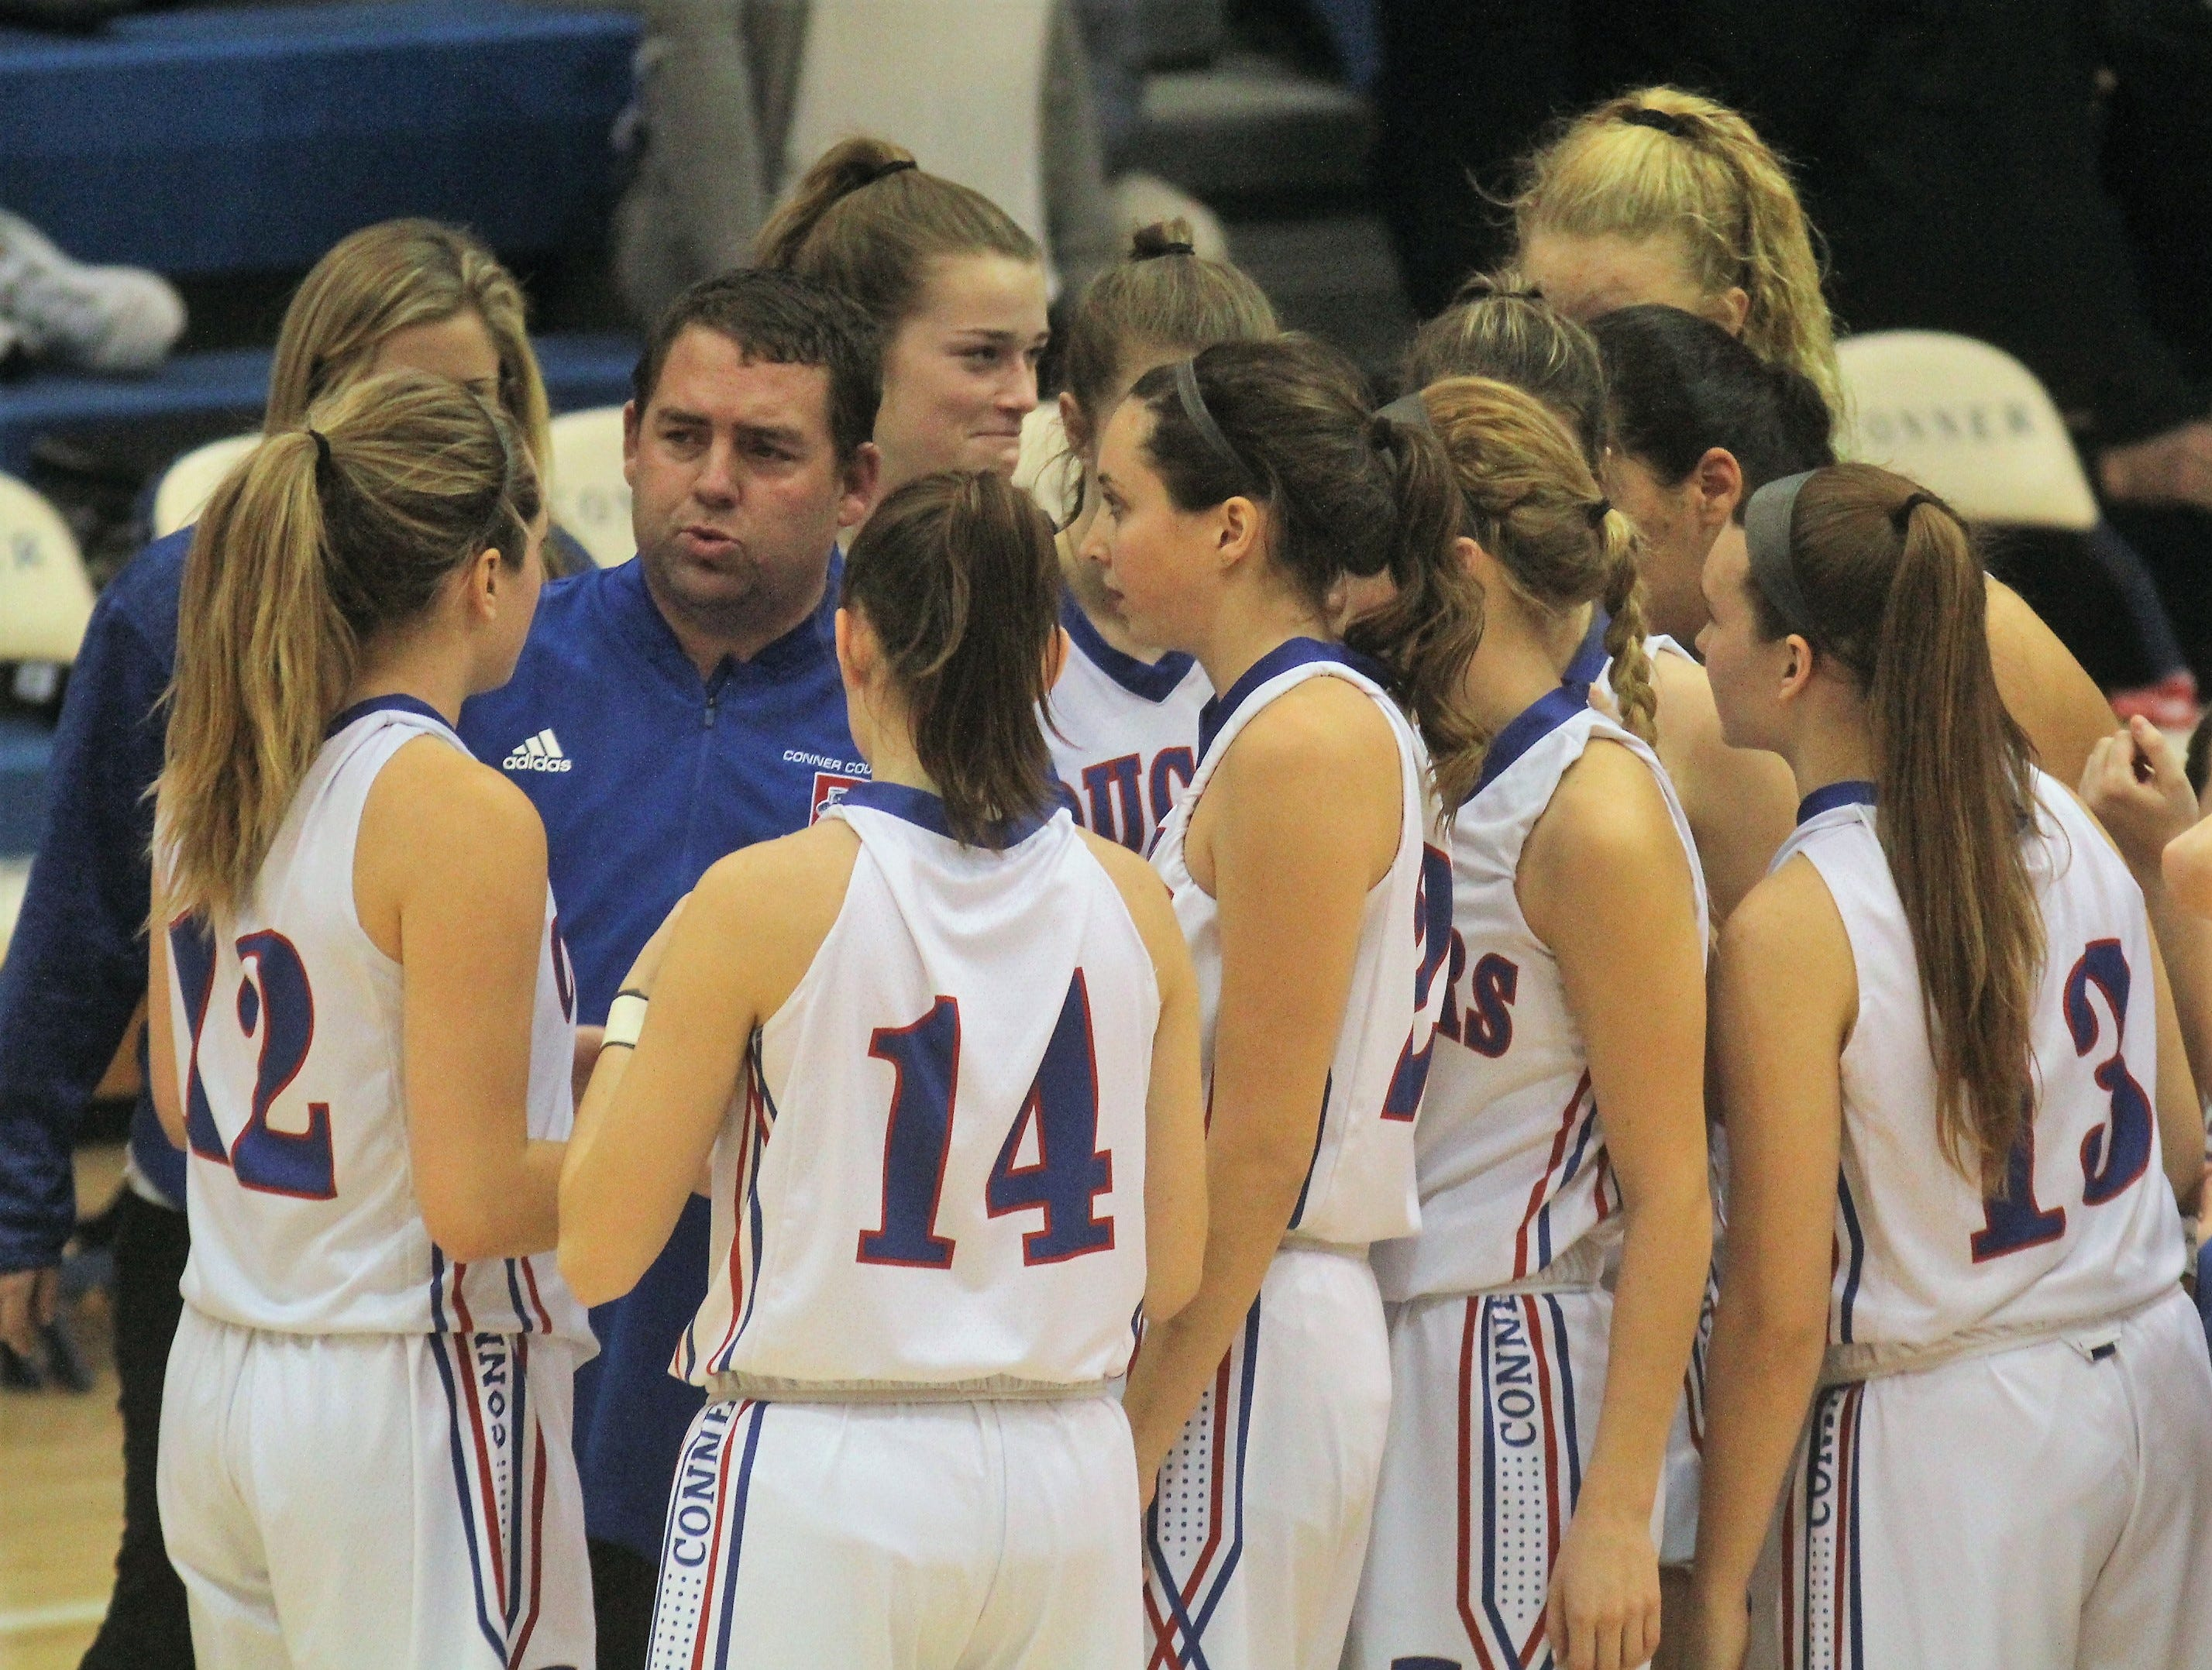 Conner head coach Aaron Stamm talks to the Cougars during a time out, as Ryle defeated Conner 60-49 in a girls basketball district game Dec. 7, 2018 at Conner High School, Hebron KY.